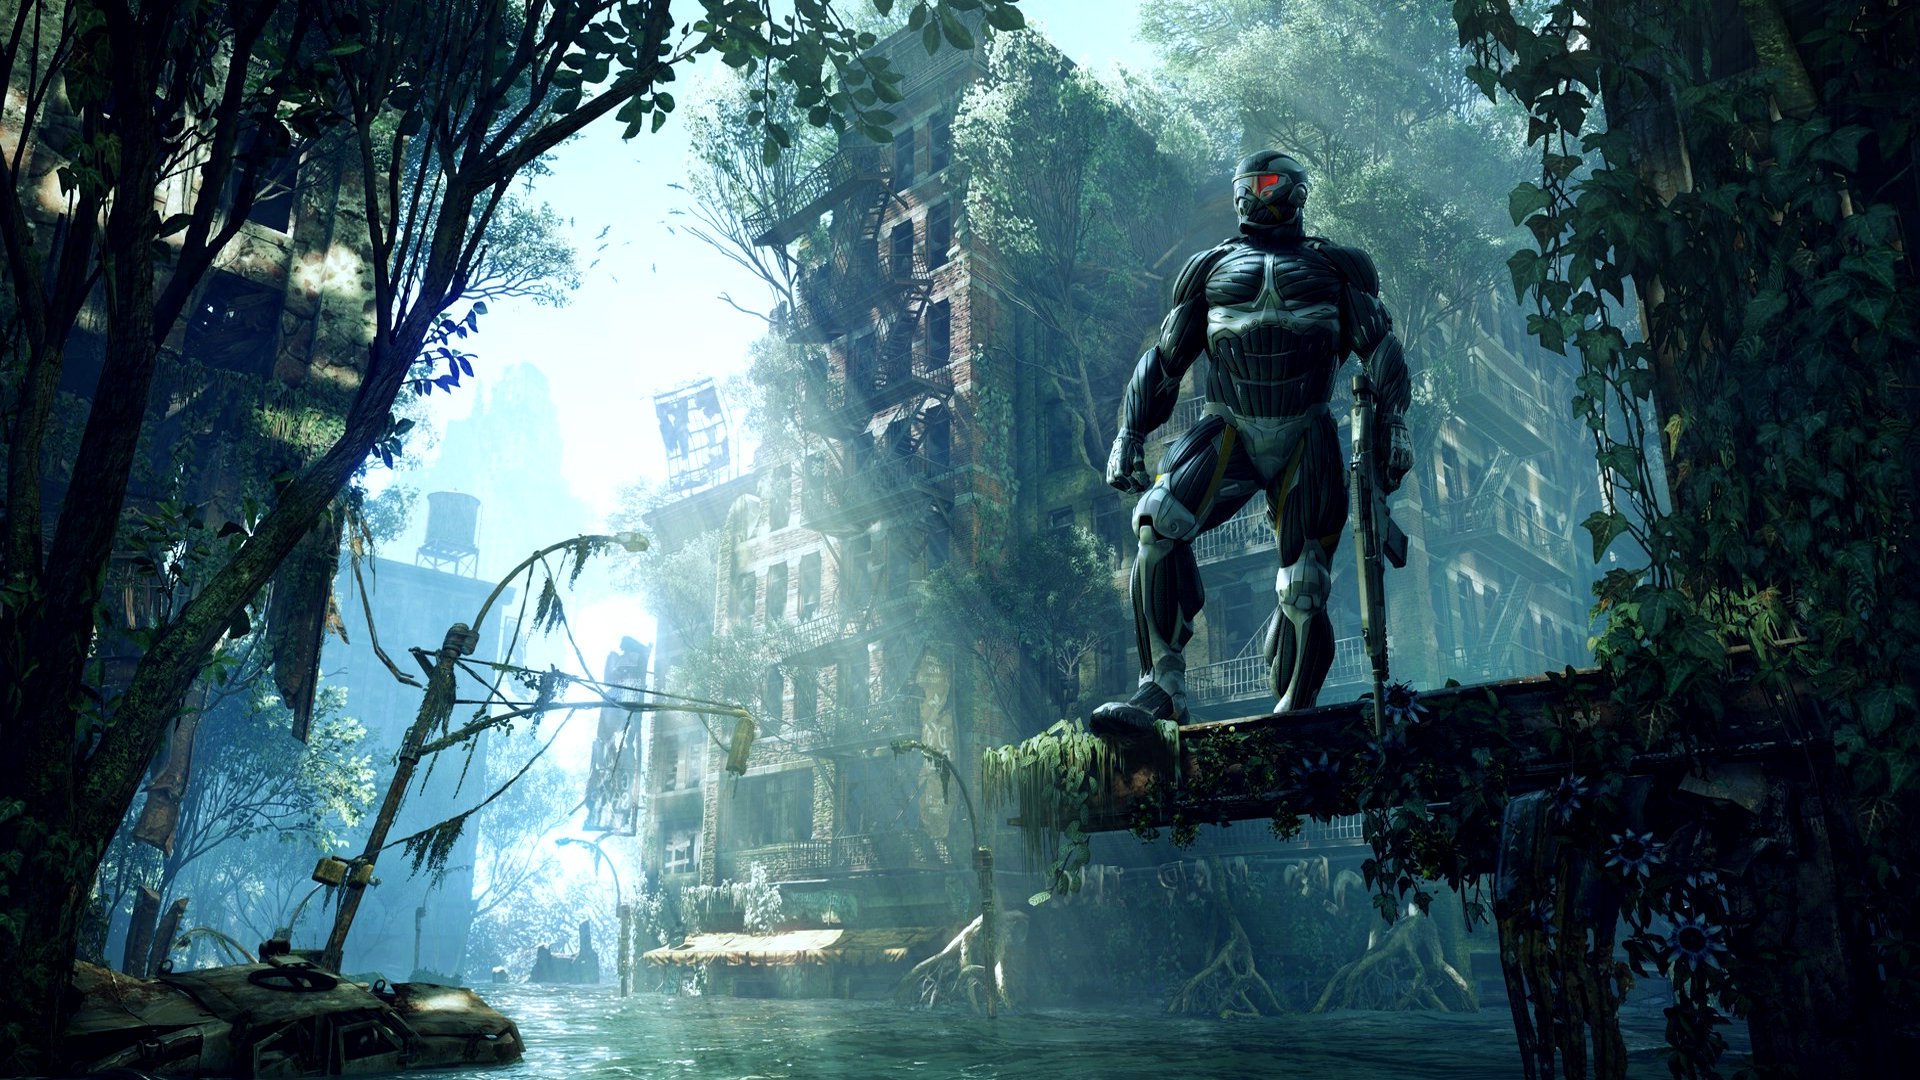 crysis 4 wallpaper hd-#17